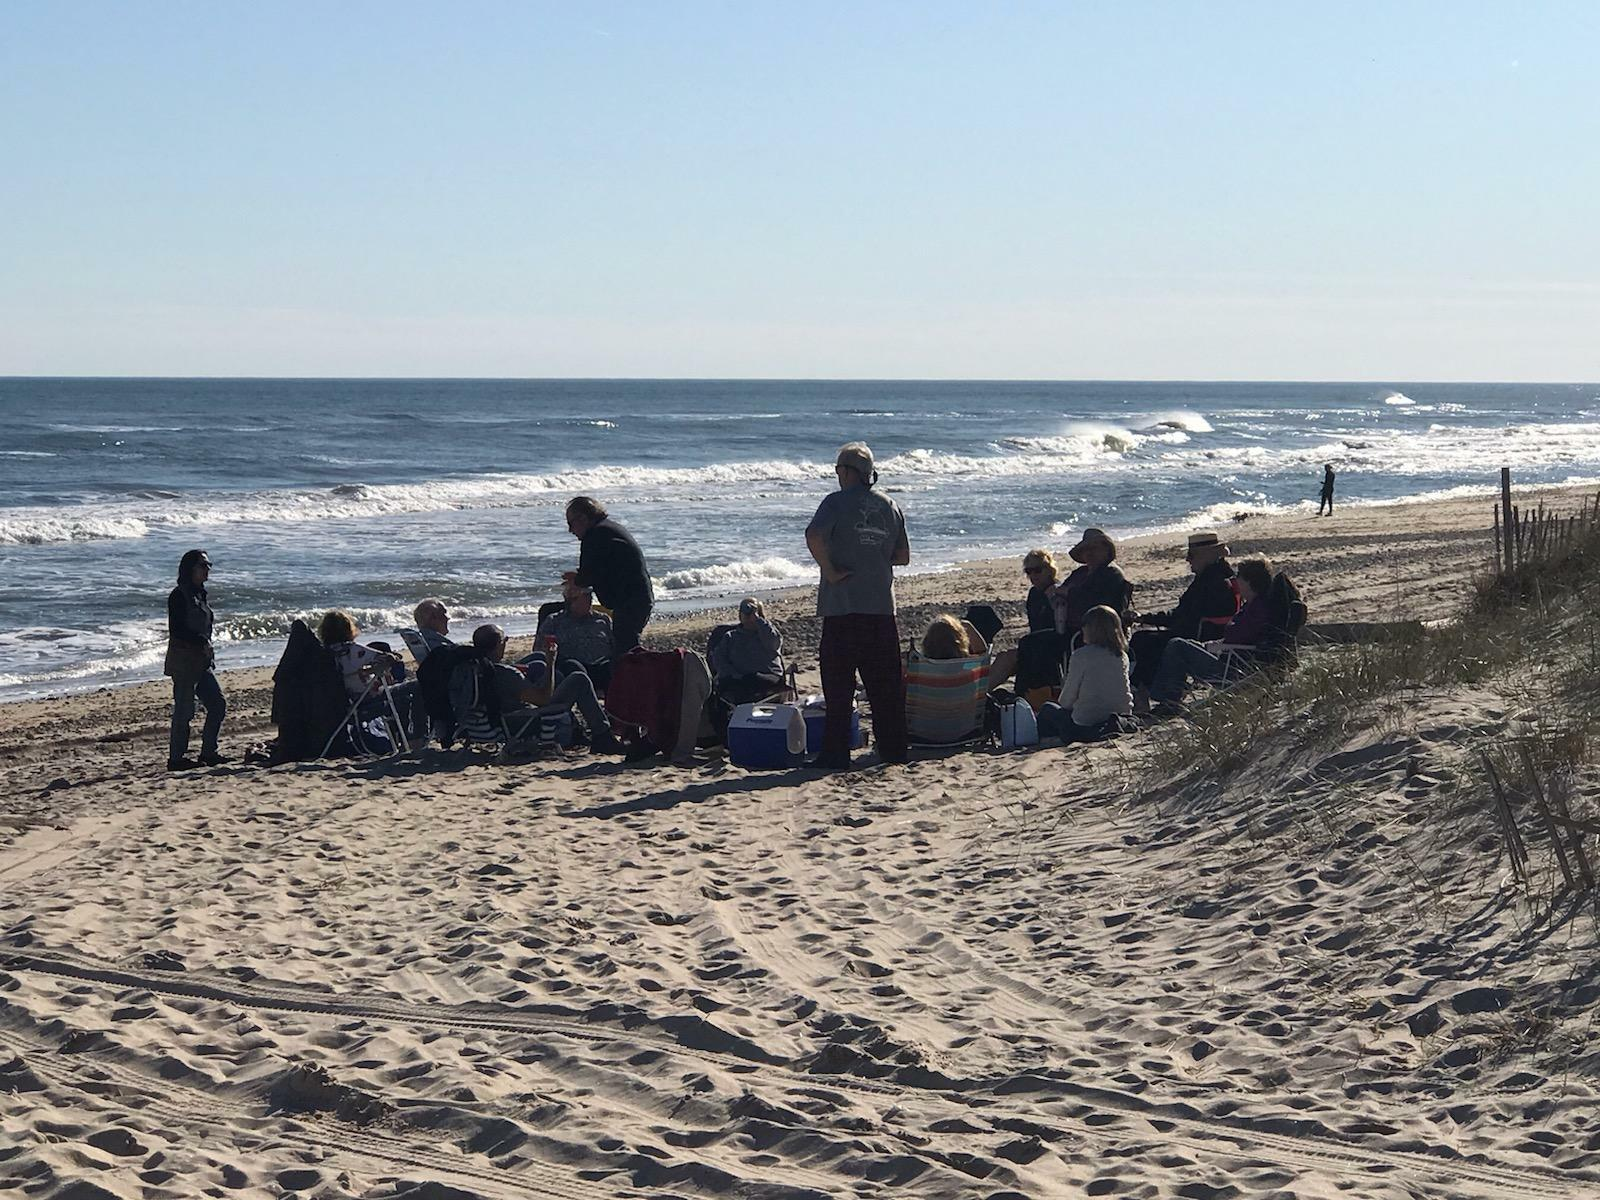 An exasperated East Hampton Town Supervisor Peter Van Scoyoc shared this shot of over a dozen people at a beach party on Ditch Plains Beach in Montauk Friday evening.